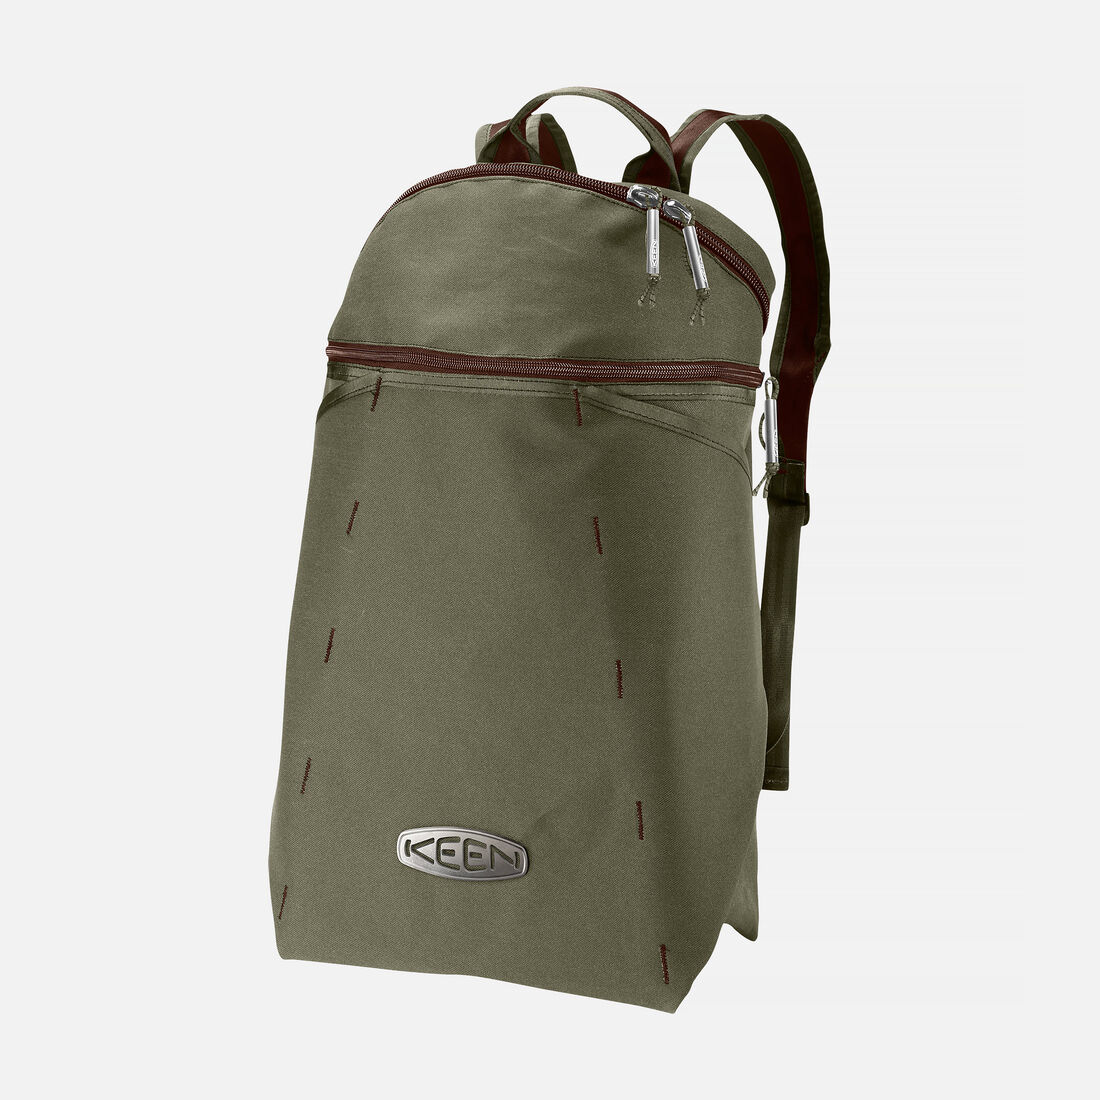 POST DAYPACK in Olive/Potting Soil - large view.